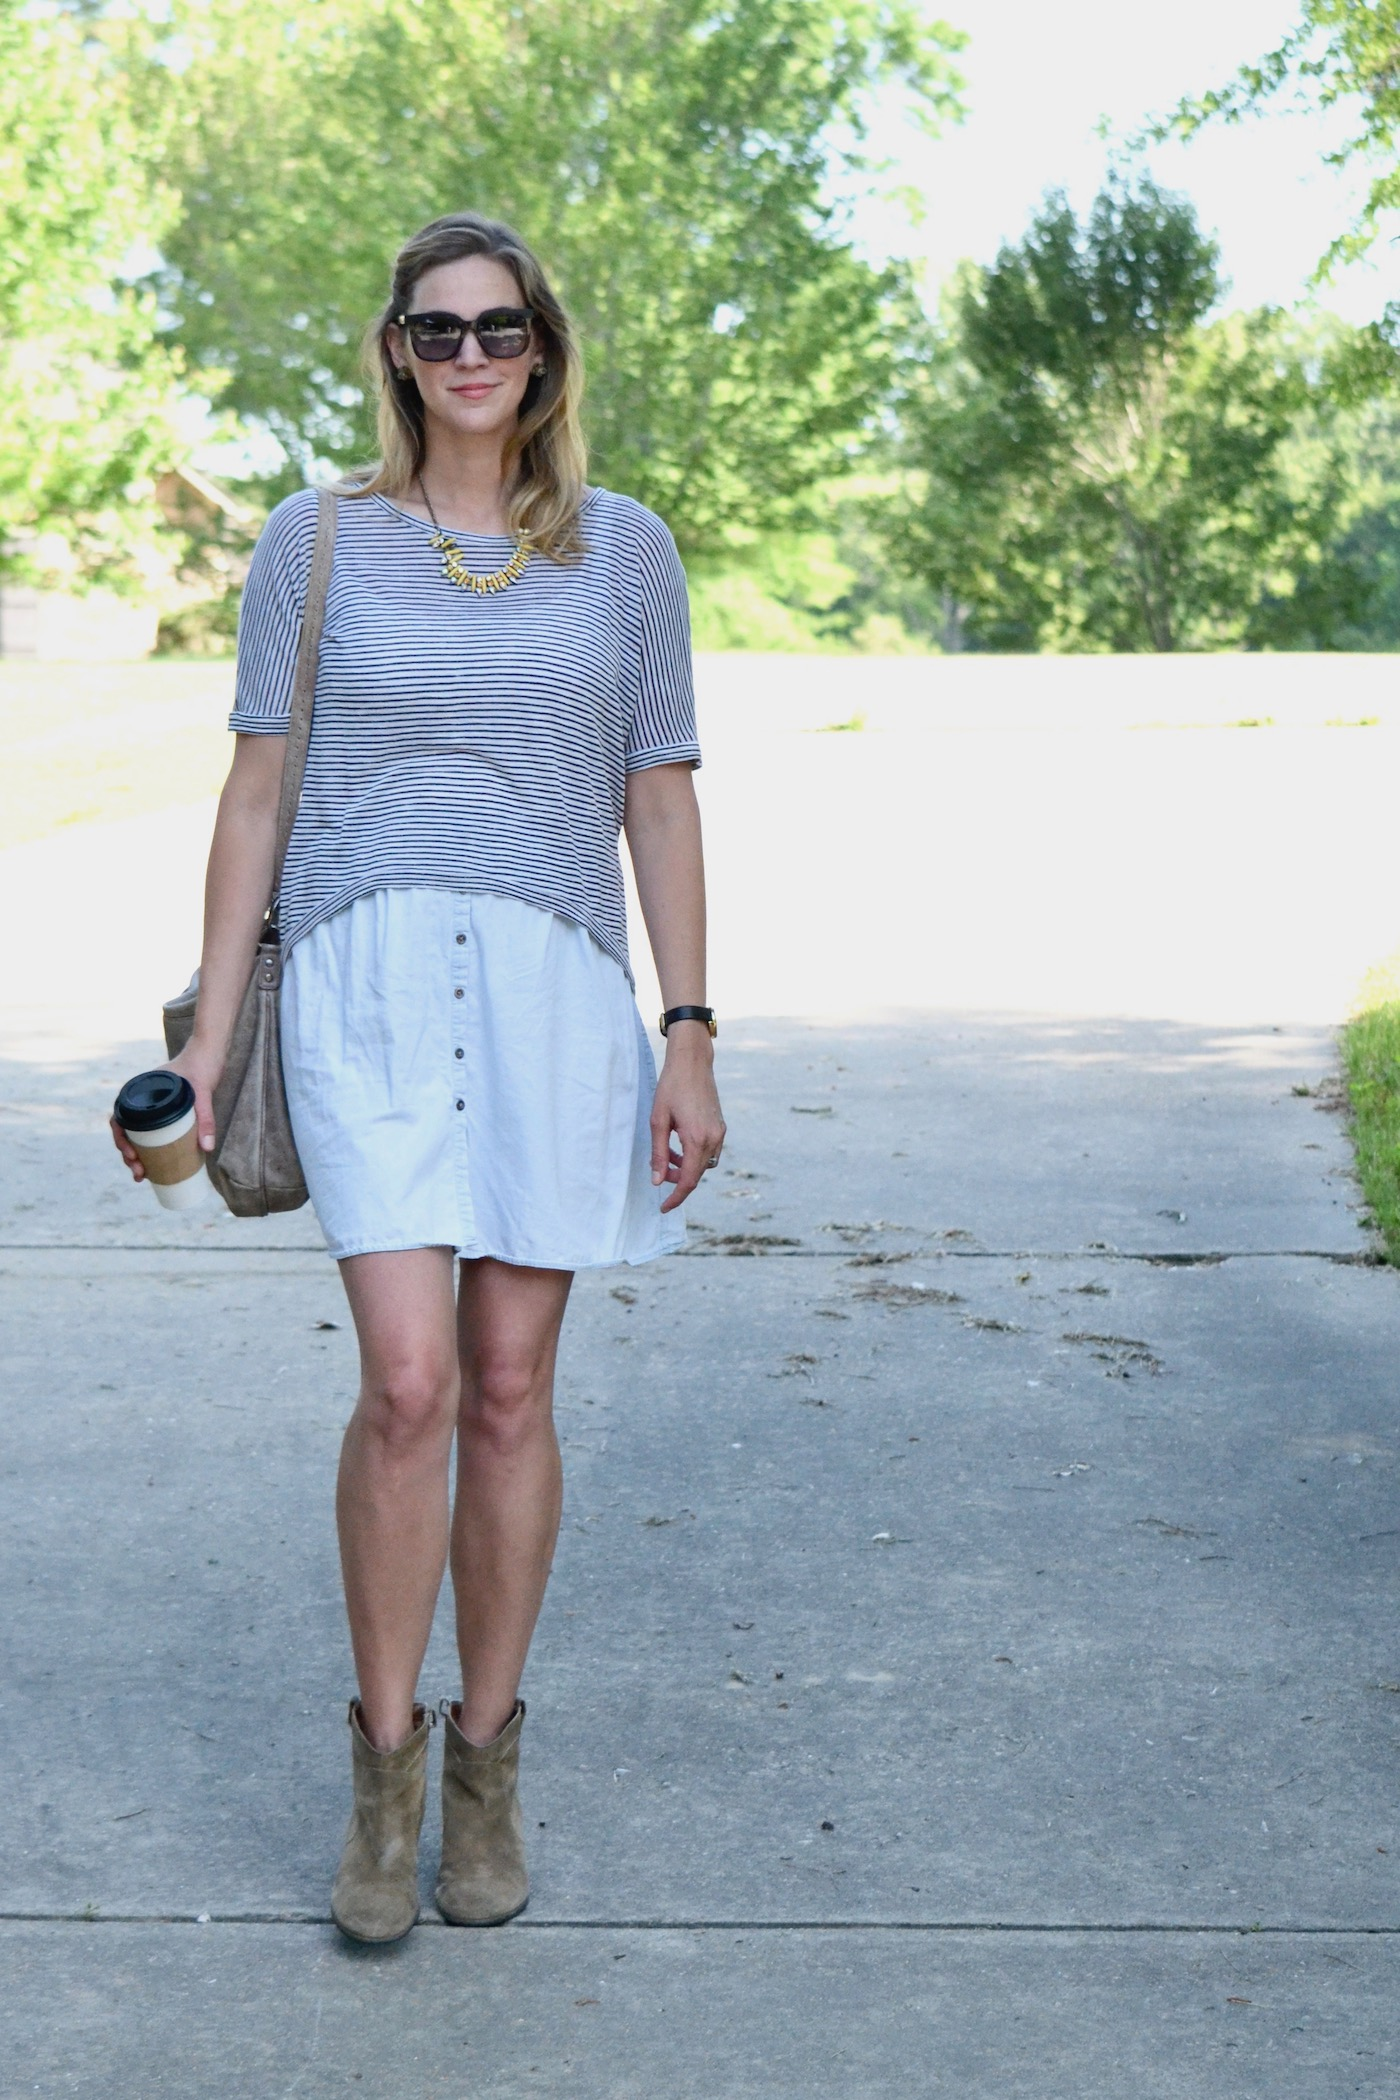 Layering while pregnant: How to dress in the first trimester // www.thehiveblog.com